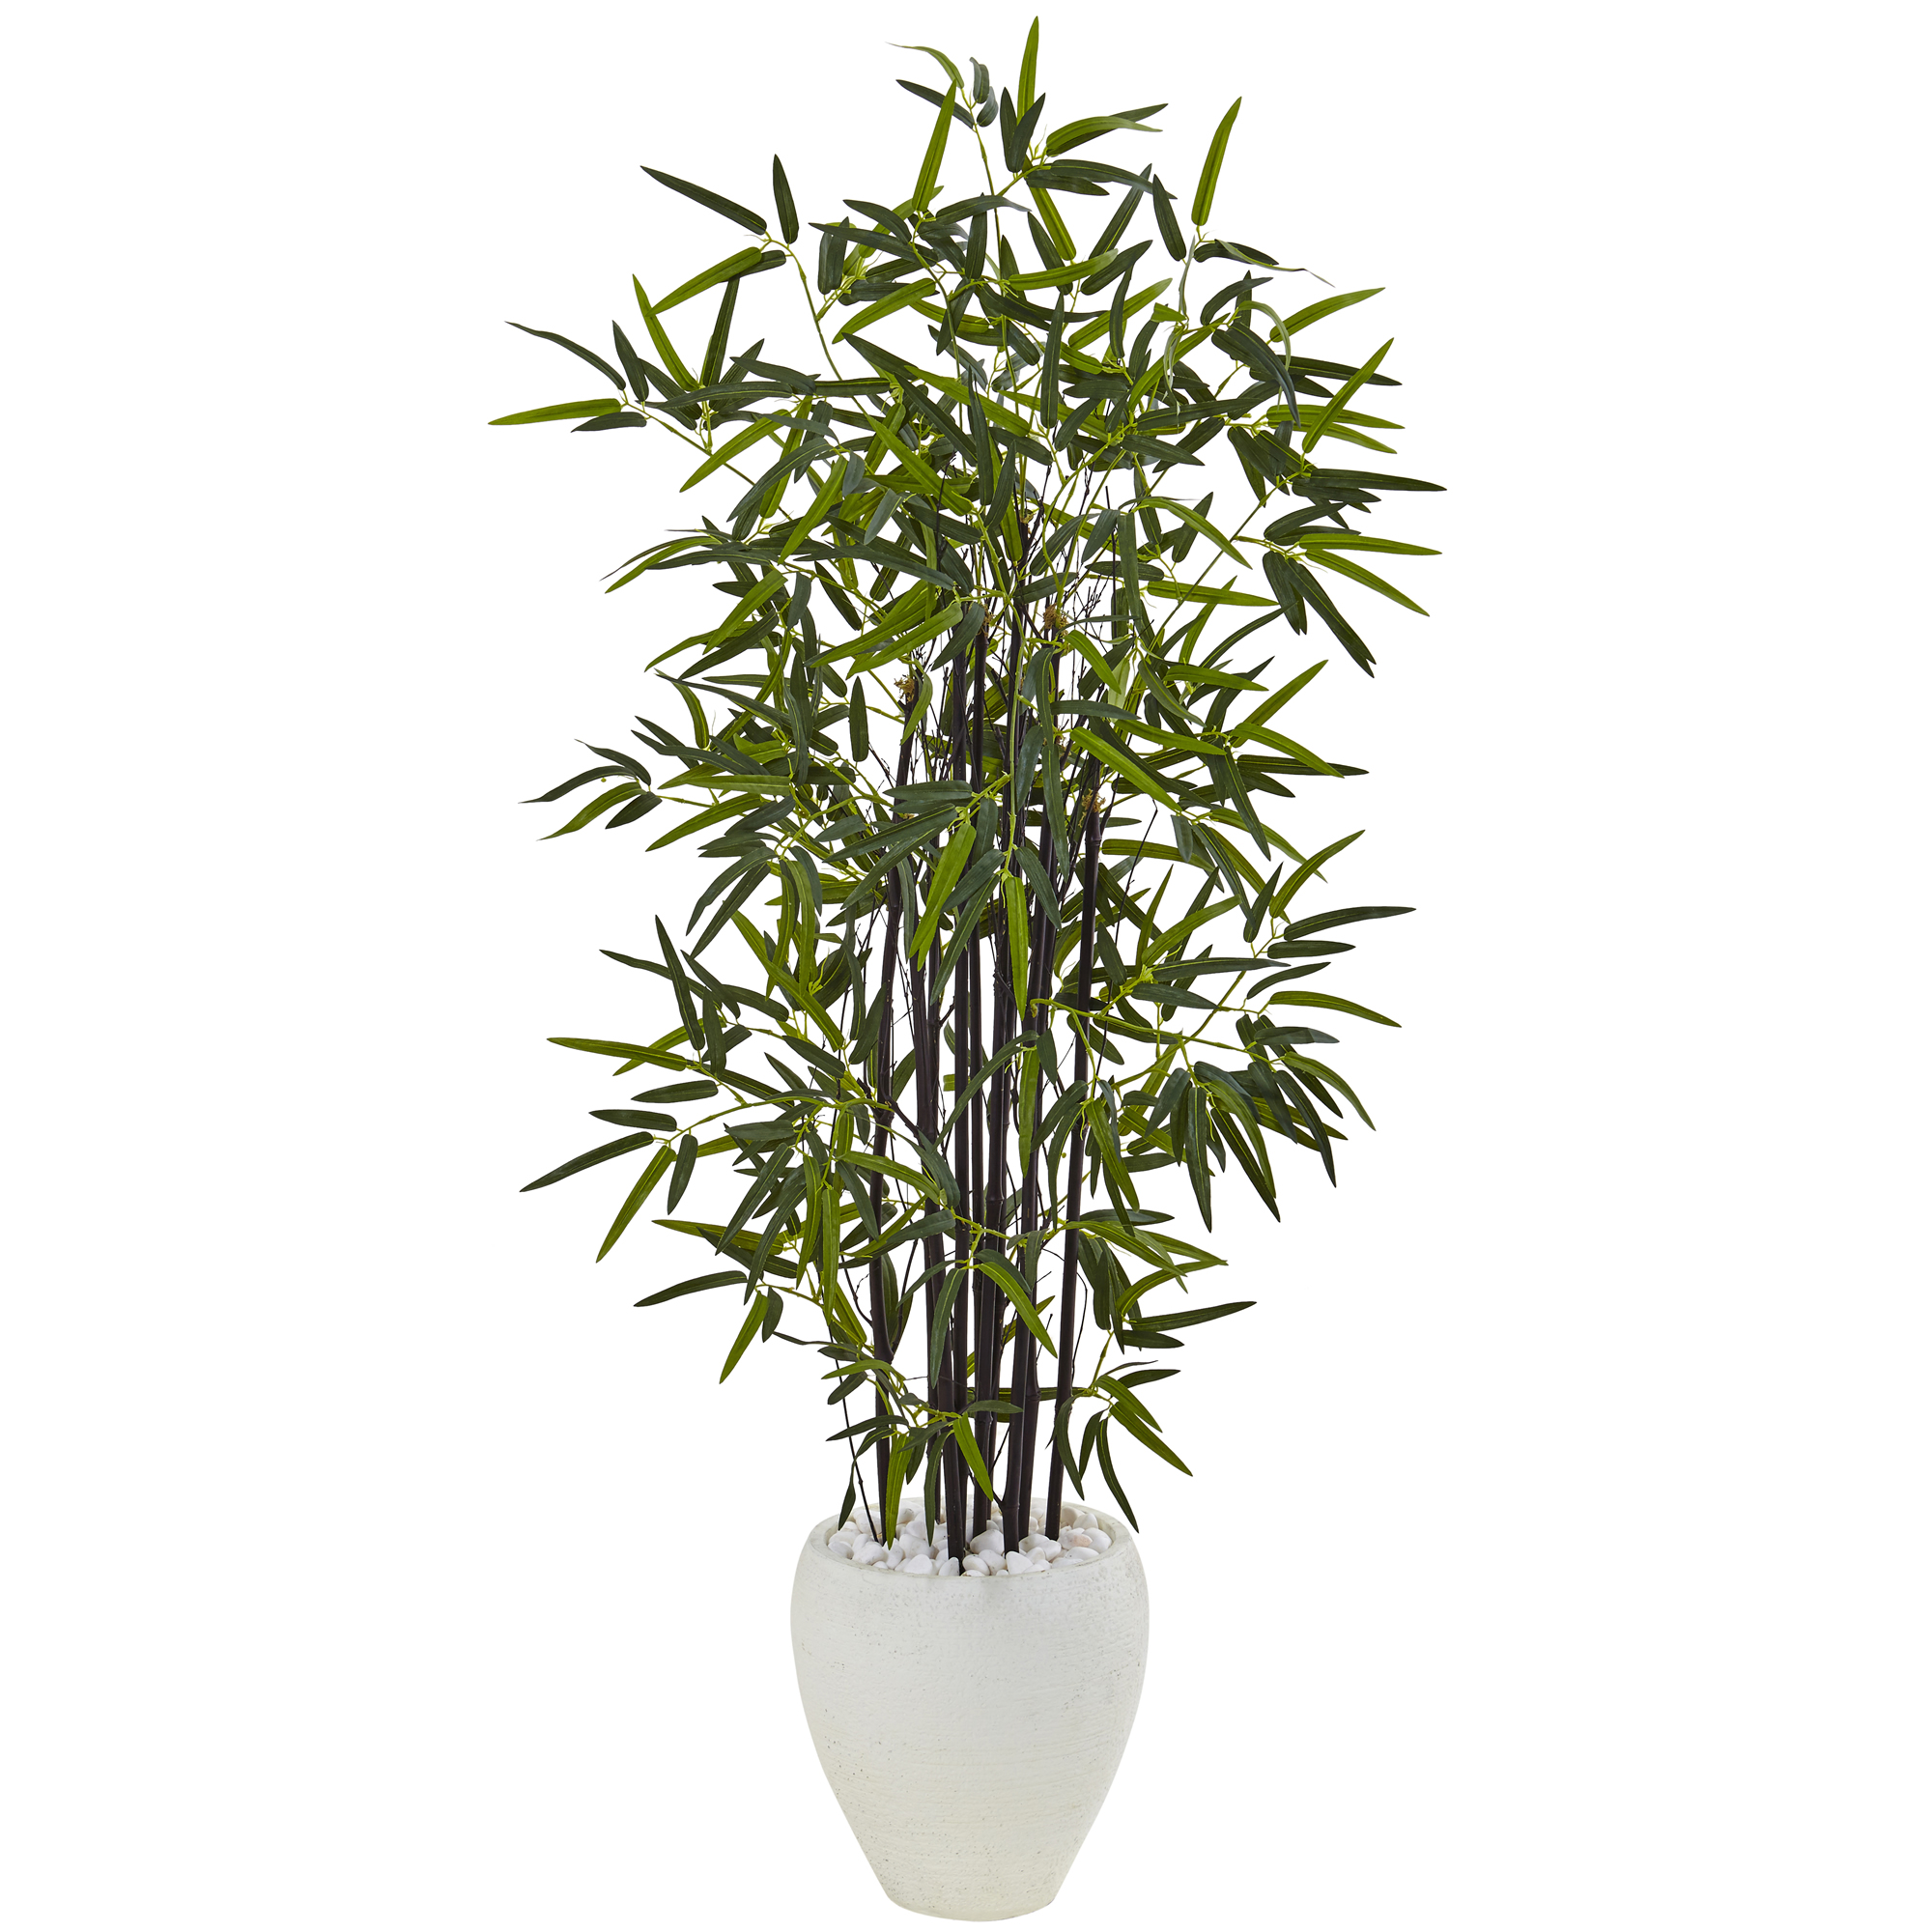 Replica 5 Ft Black Bamboo Tree In White Oval Planter